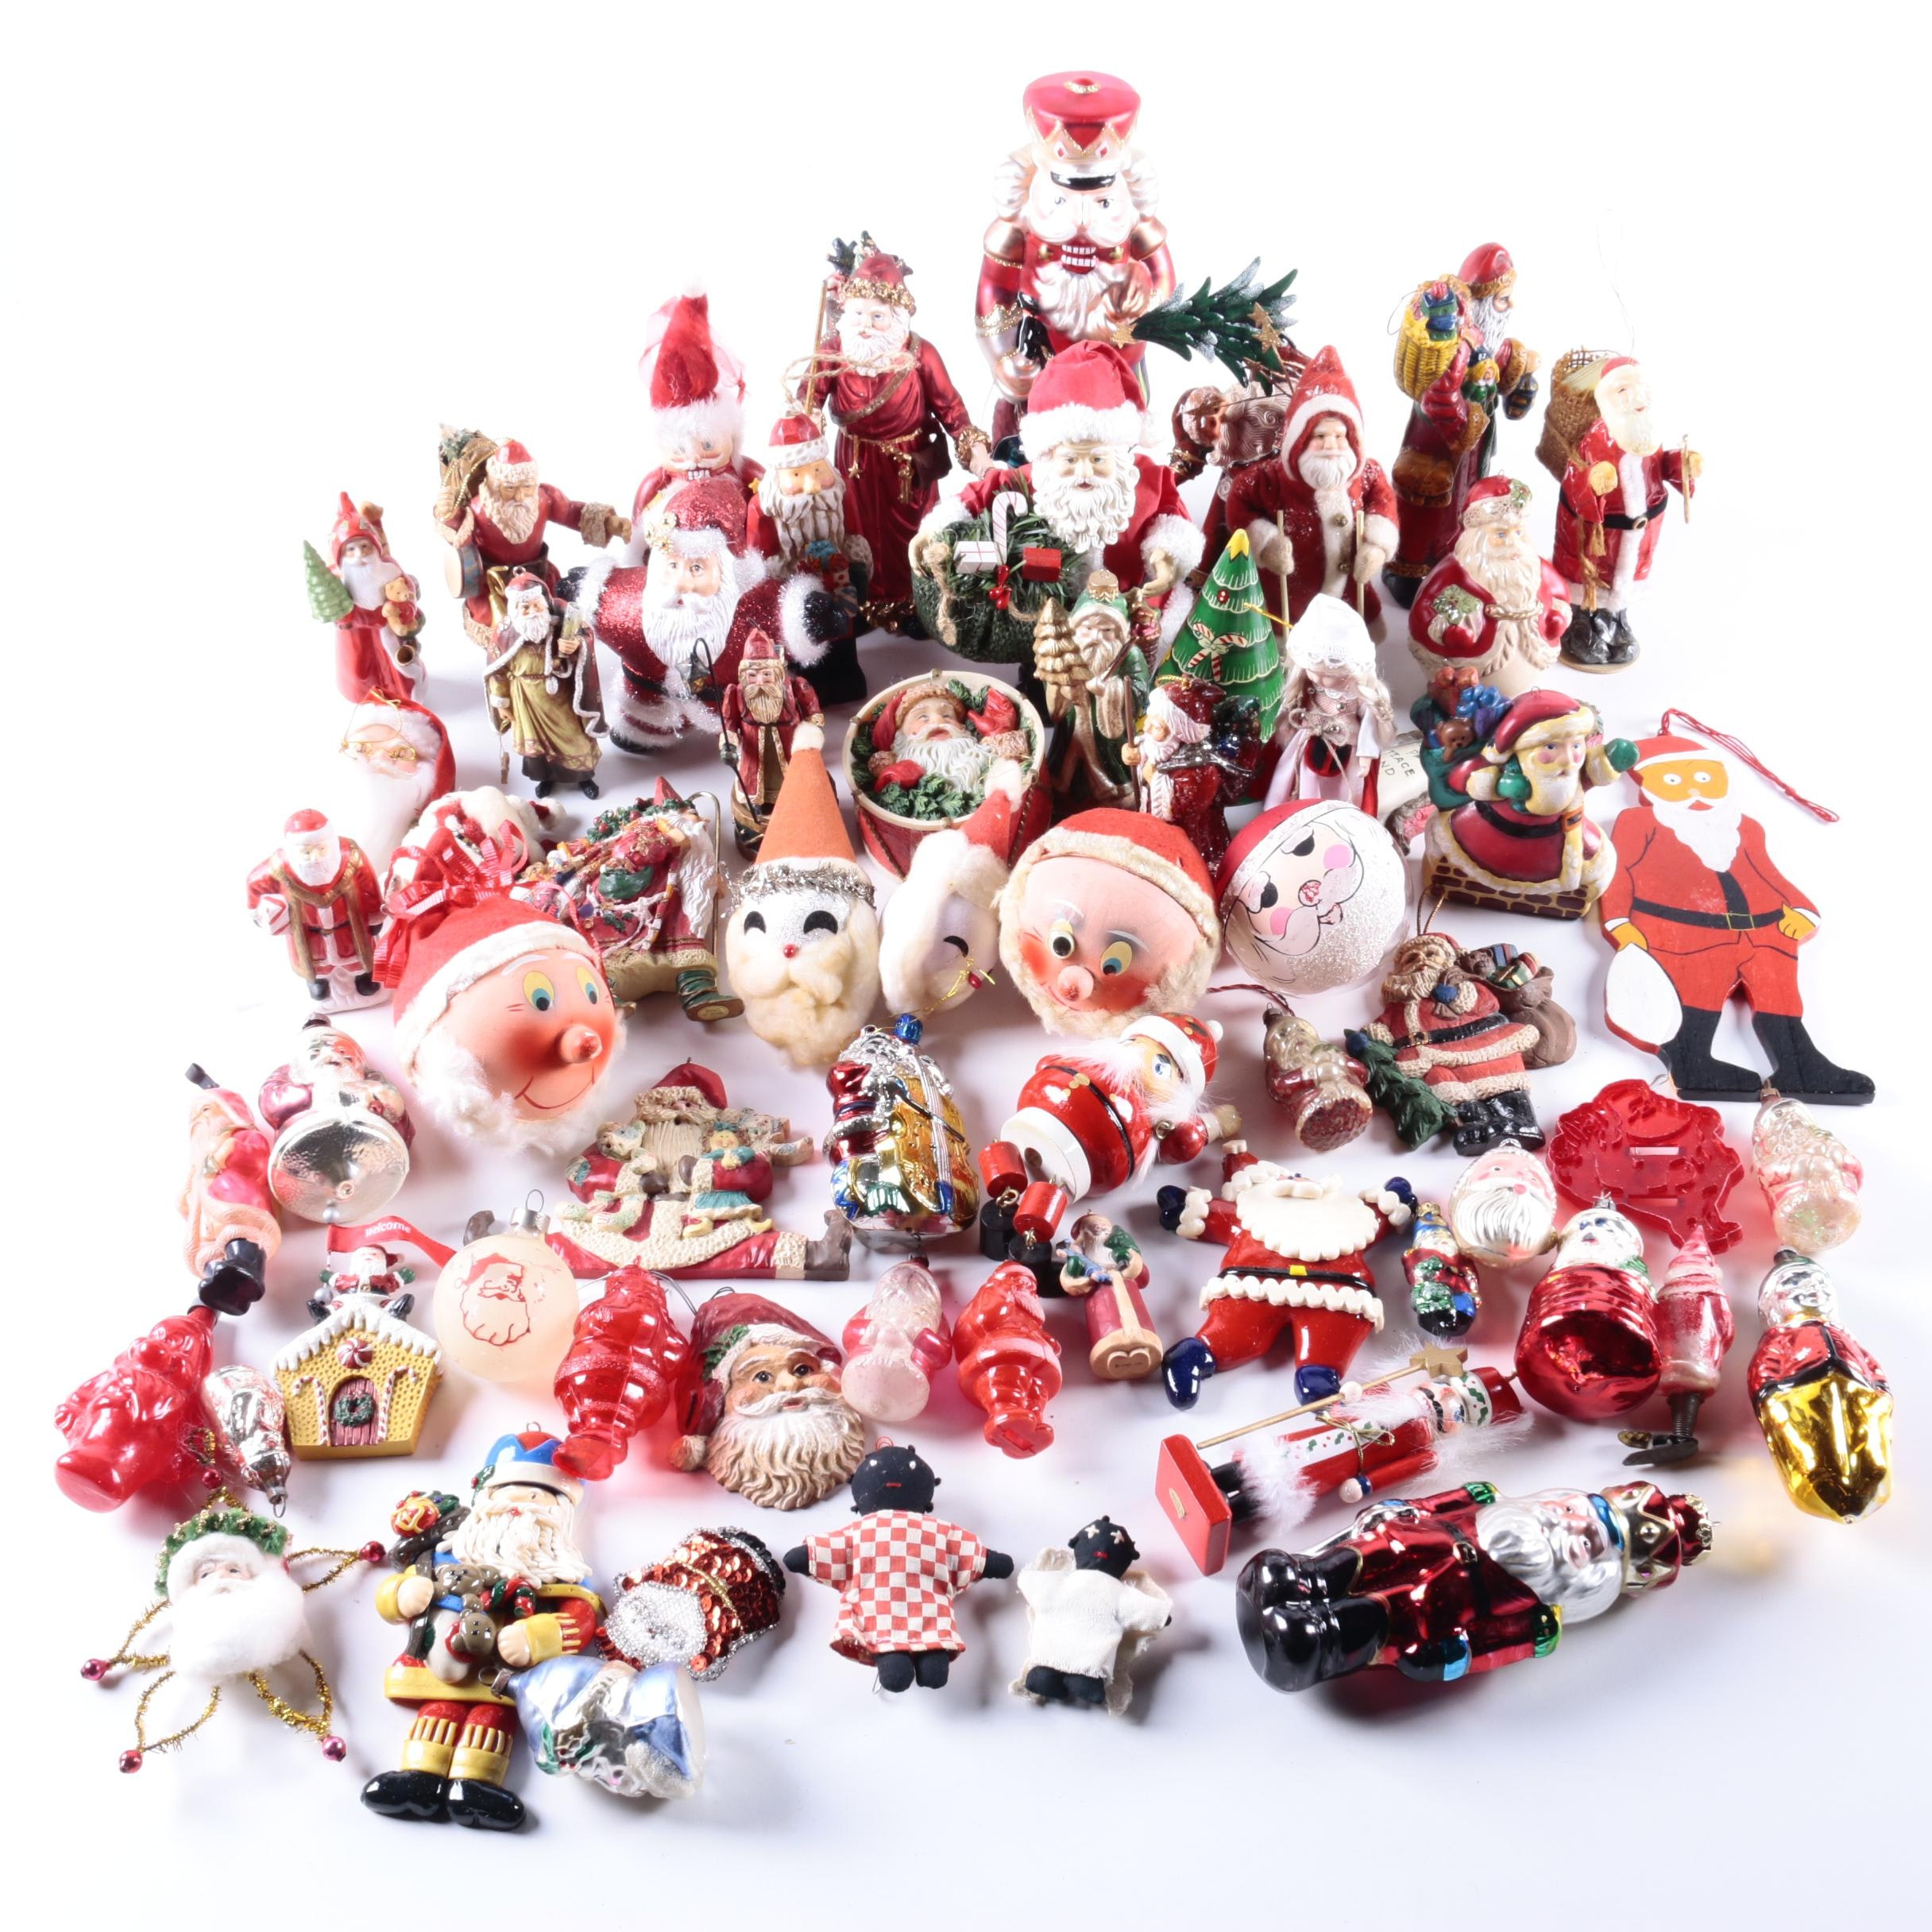 Vintage Santa Claus Christmas Ornaments and Figurines